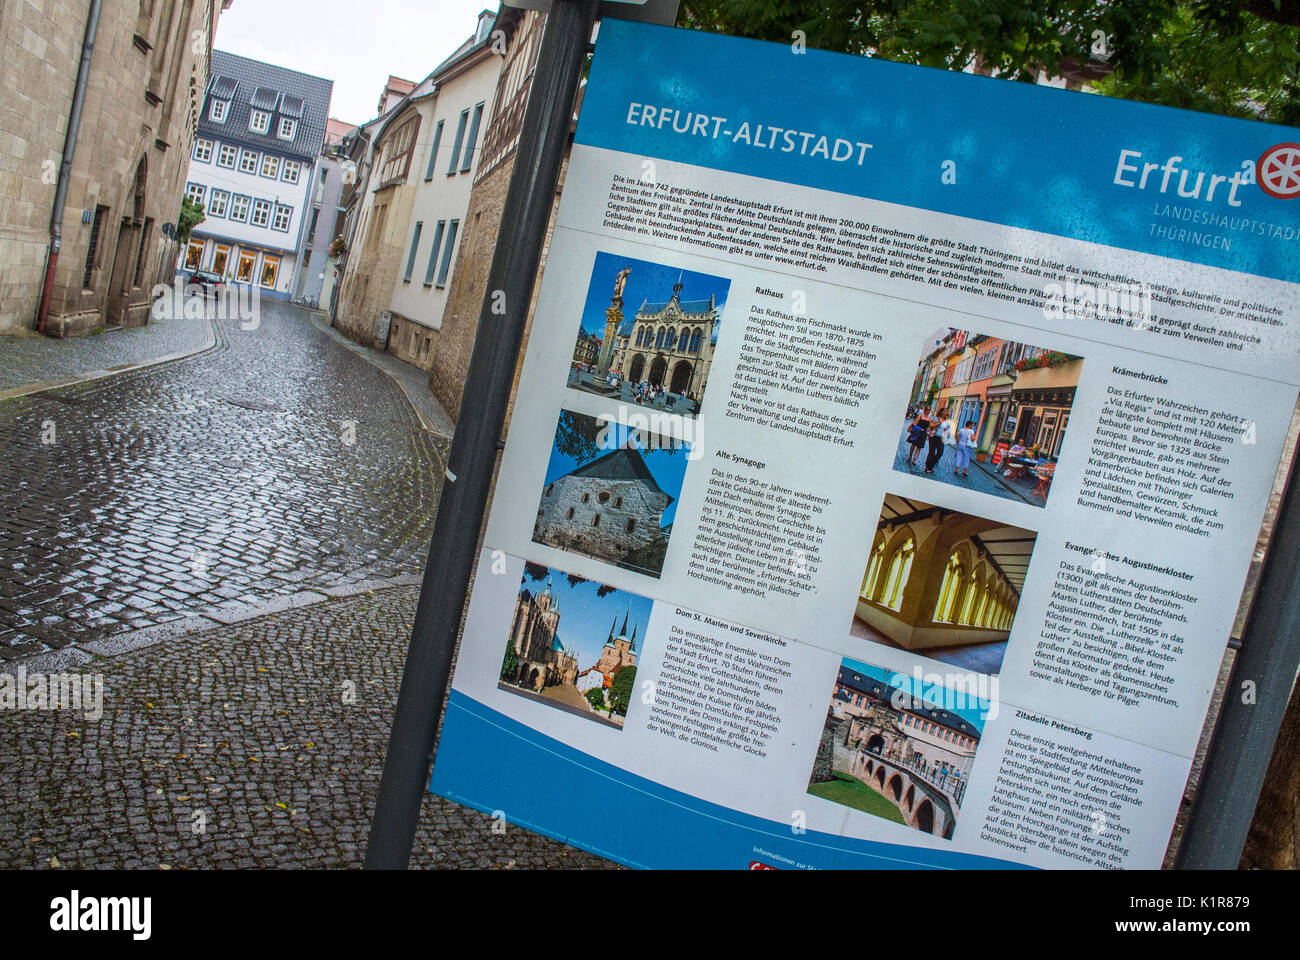 City map in the Old Town at Erfurt outlines the historical places to visit. - Stock Image